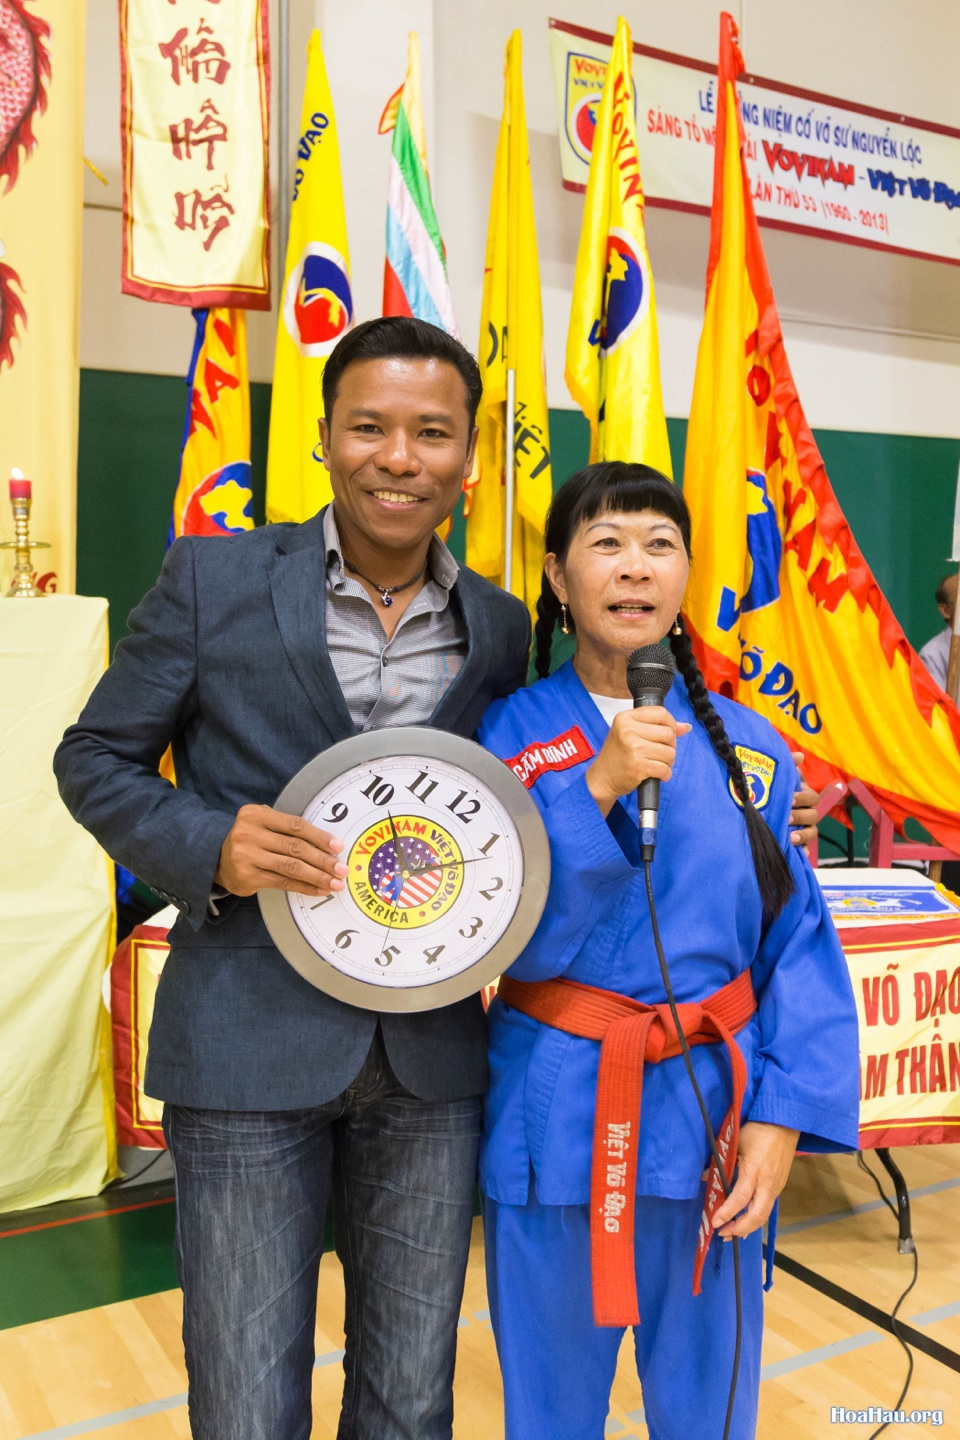 Vovinam Viet Vo Dao - 13th Annual Tournament - Yerba Buena High School - Image 037